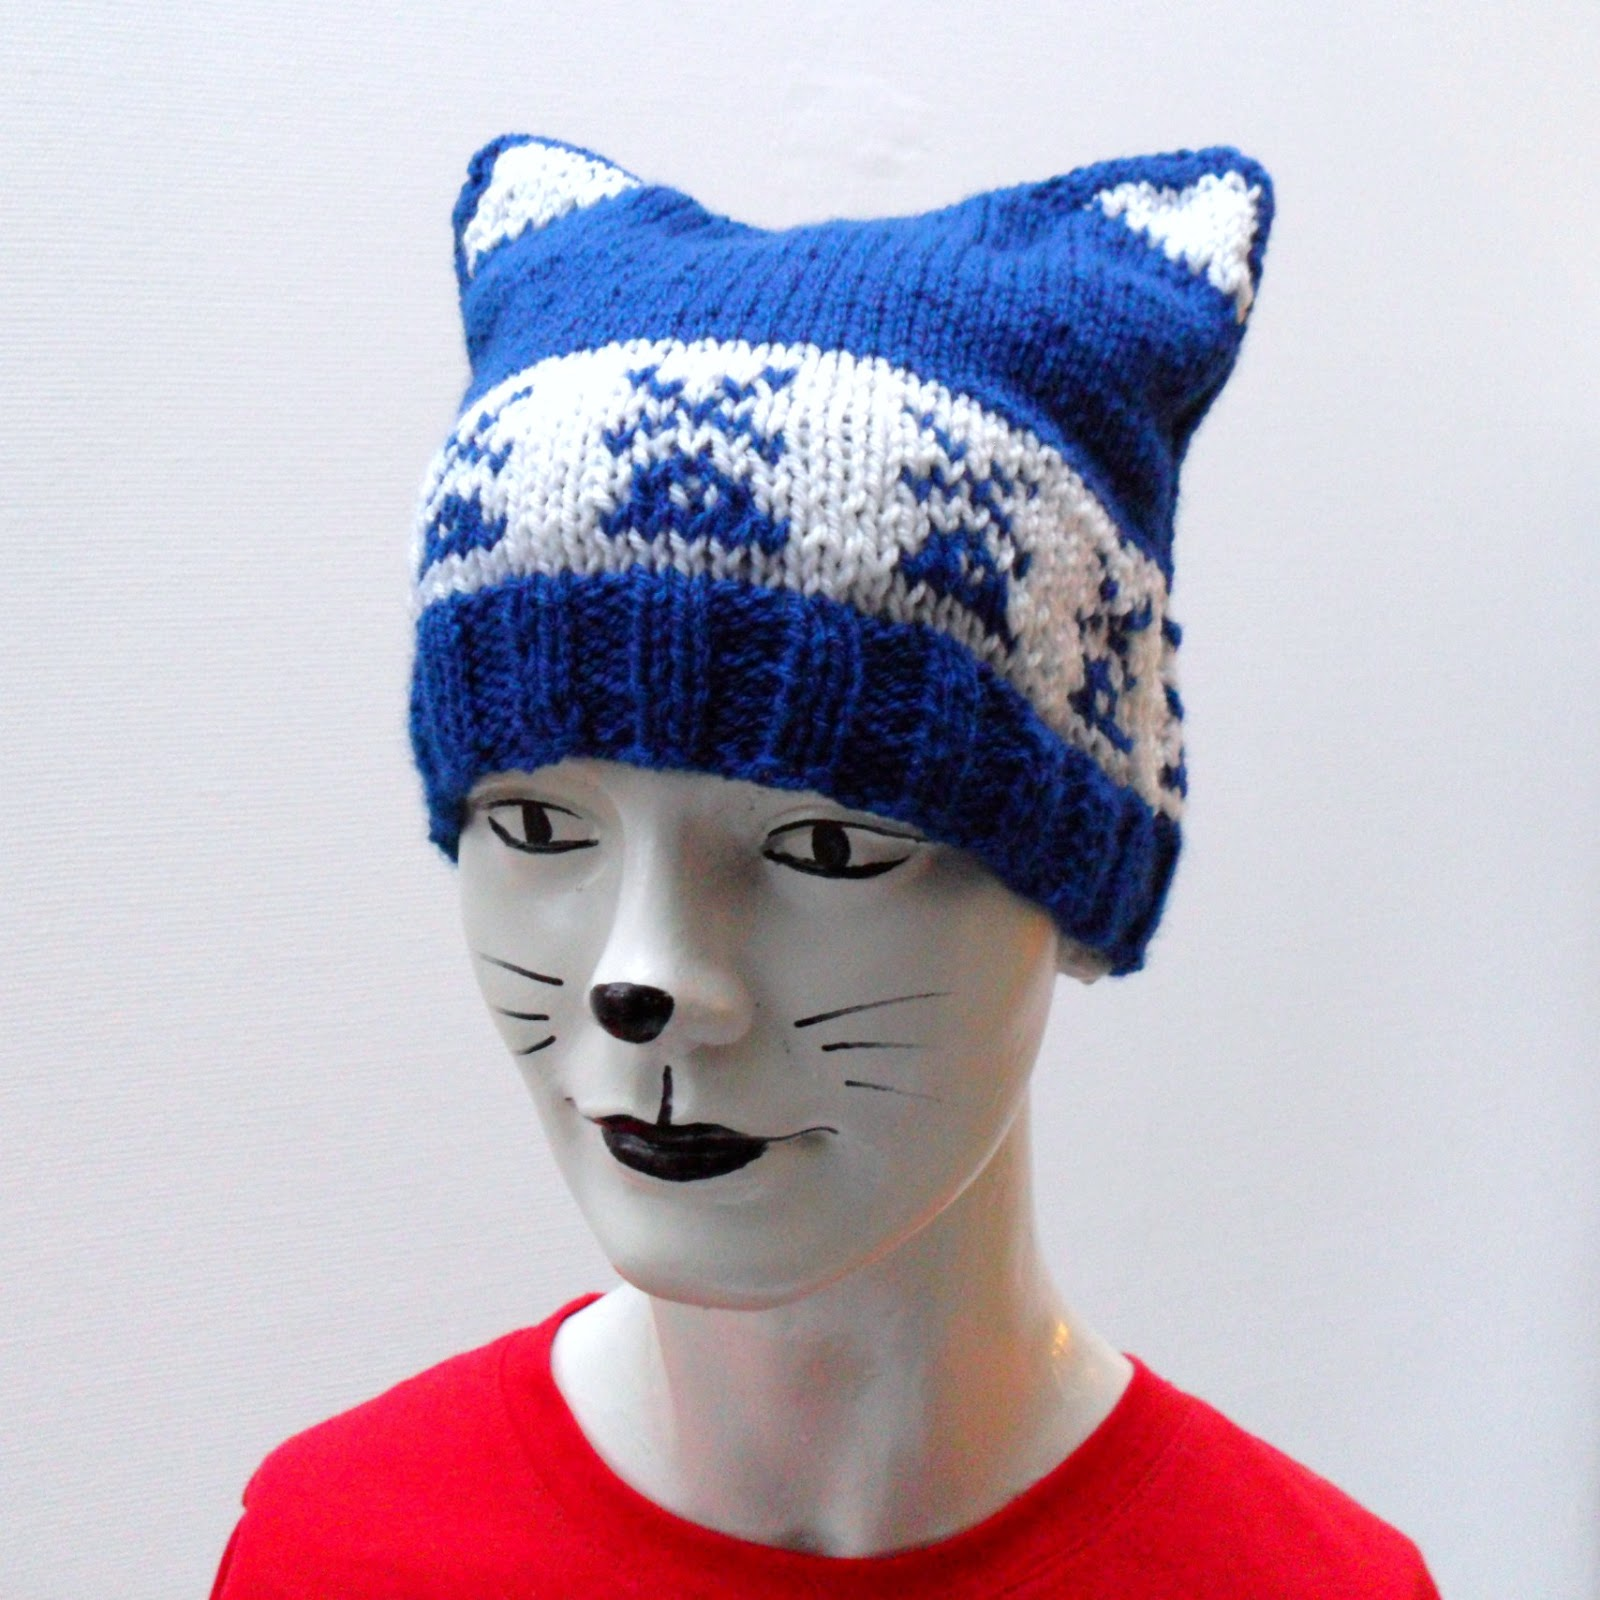 Knitting Pattern For Kitty Hat : Square Cat: super easy kitty hat knitting pattern